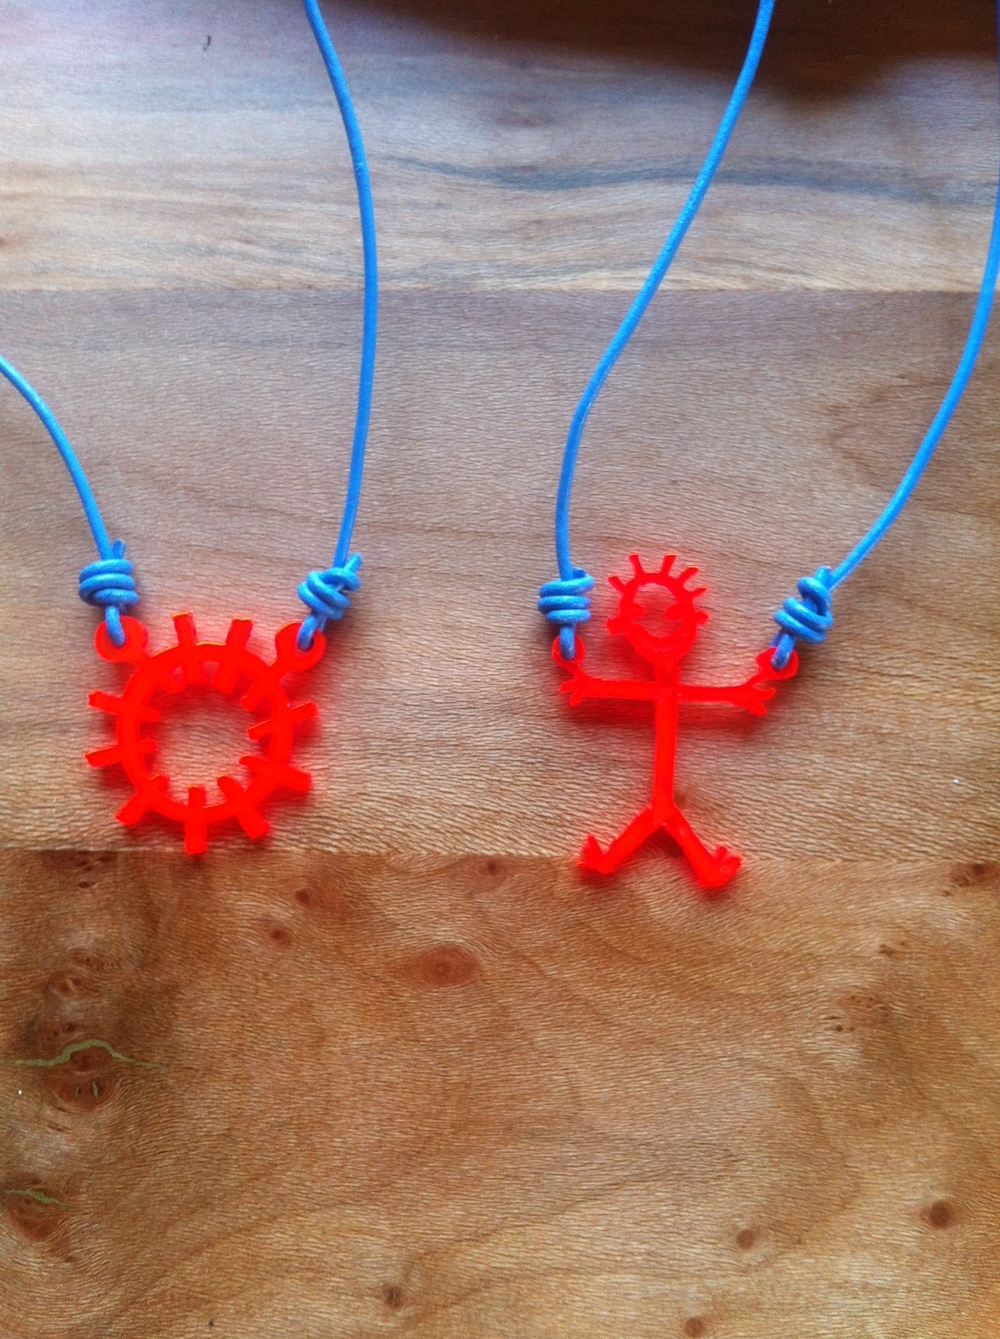 Laser cut necklaces in fluoro orange perspex and blue cord